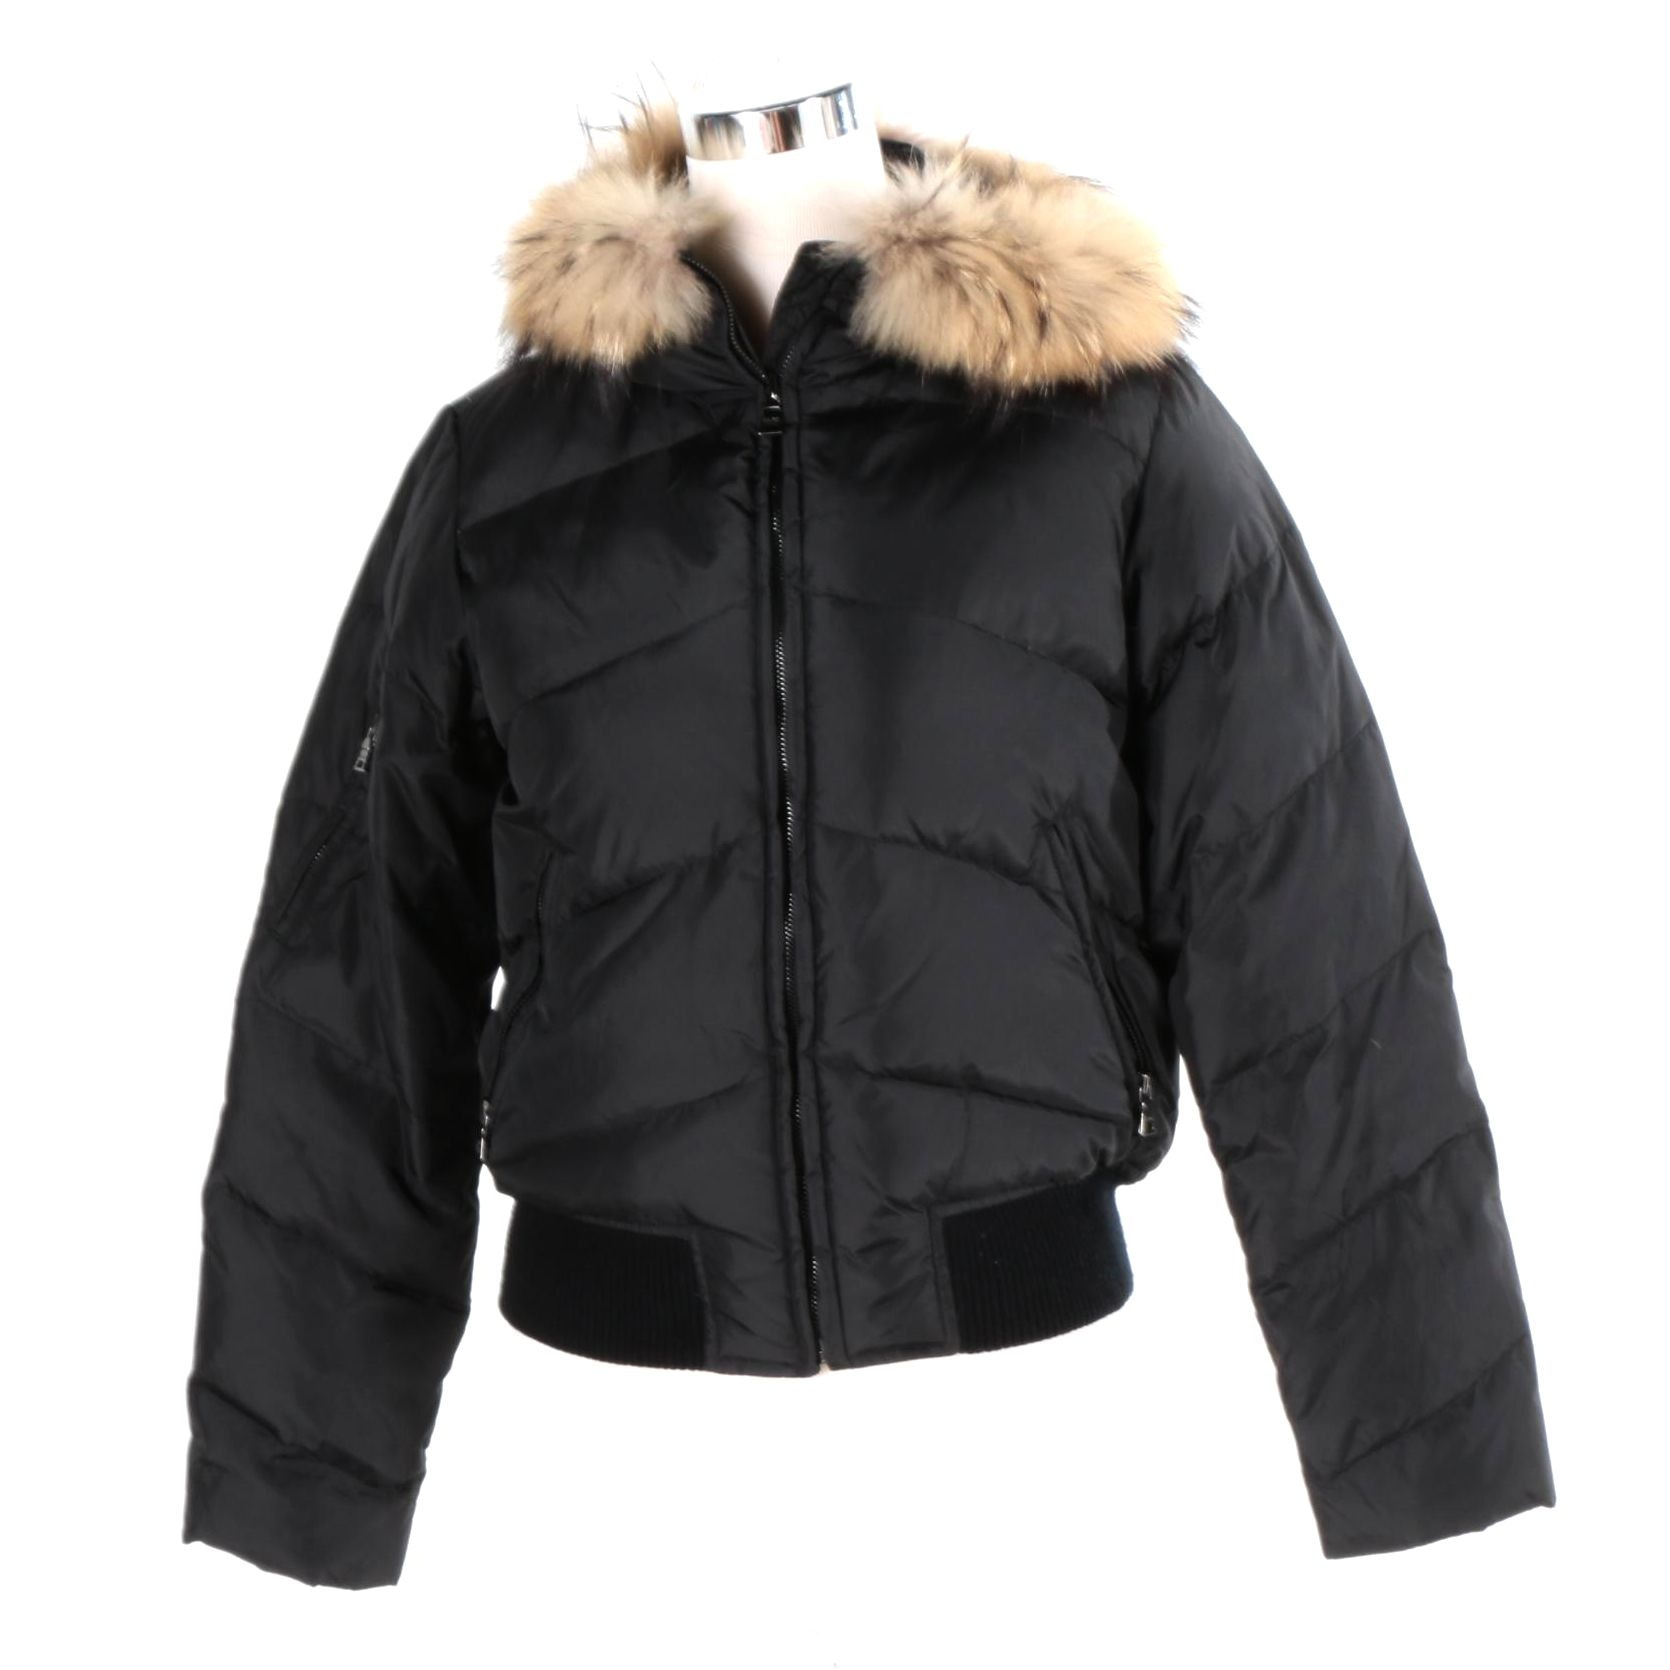 Marc New York Winter Coat With Raccoon Fur Trim